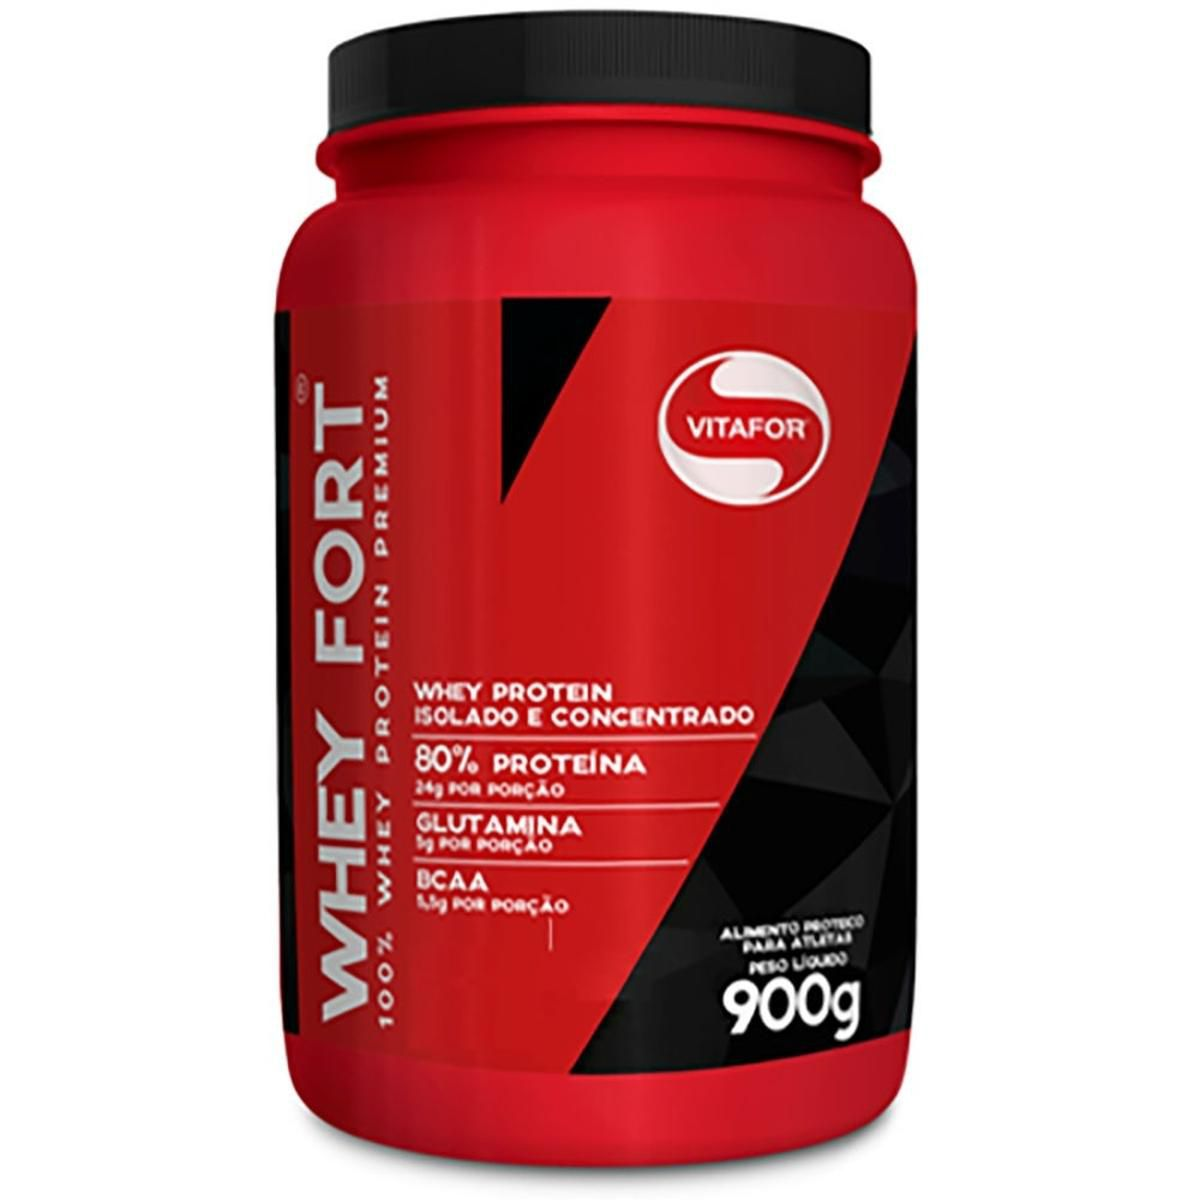 Whey Fort 900g Vitafor  - Vitta Gold